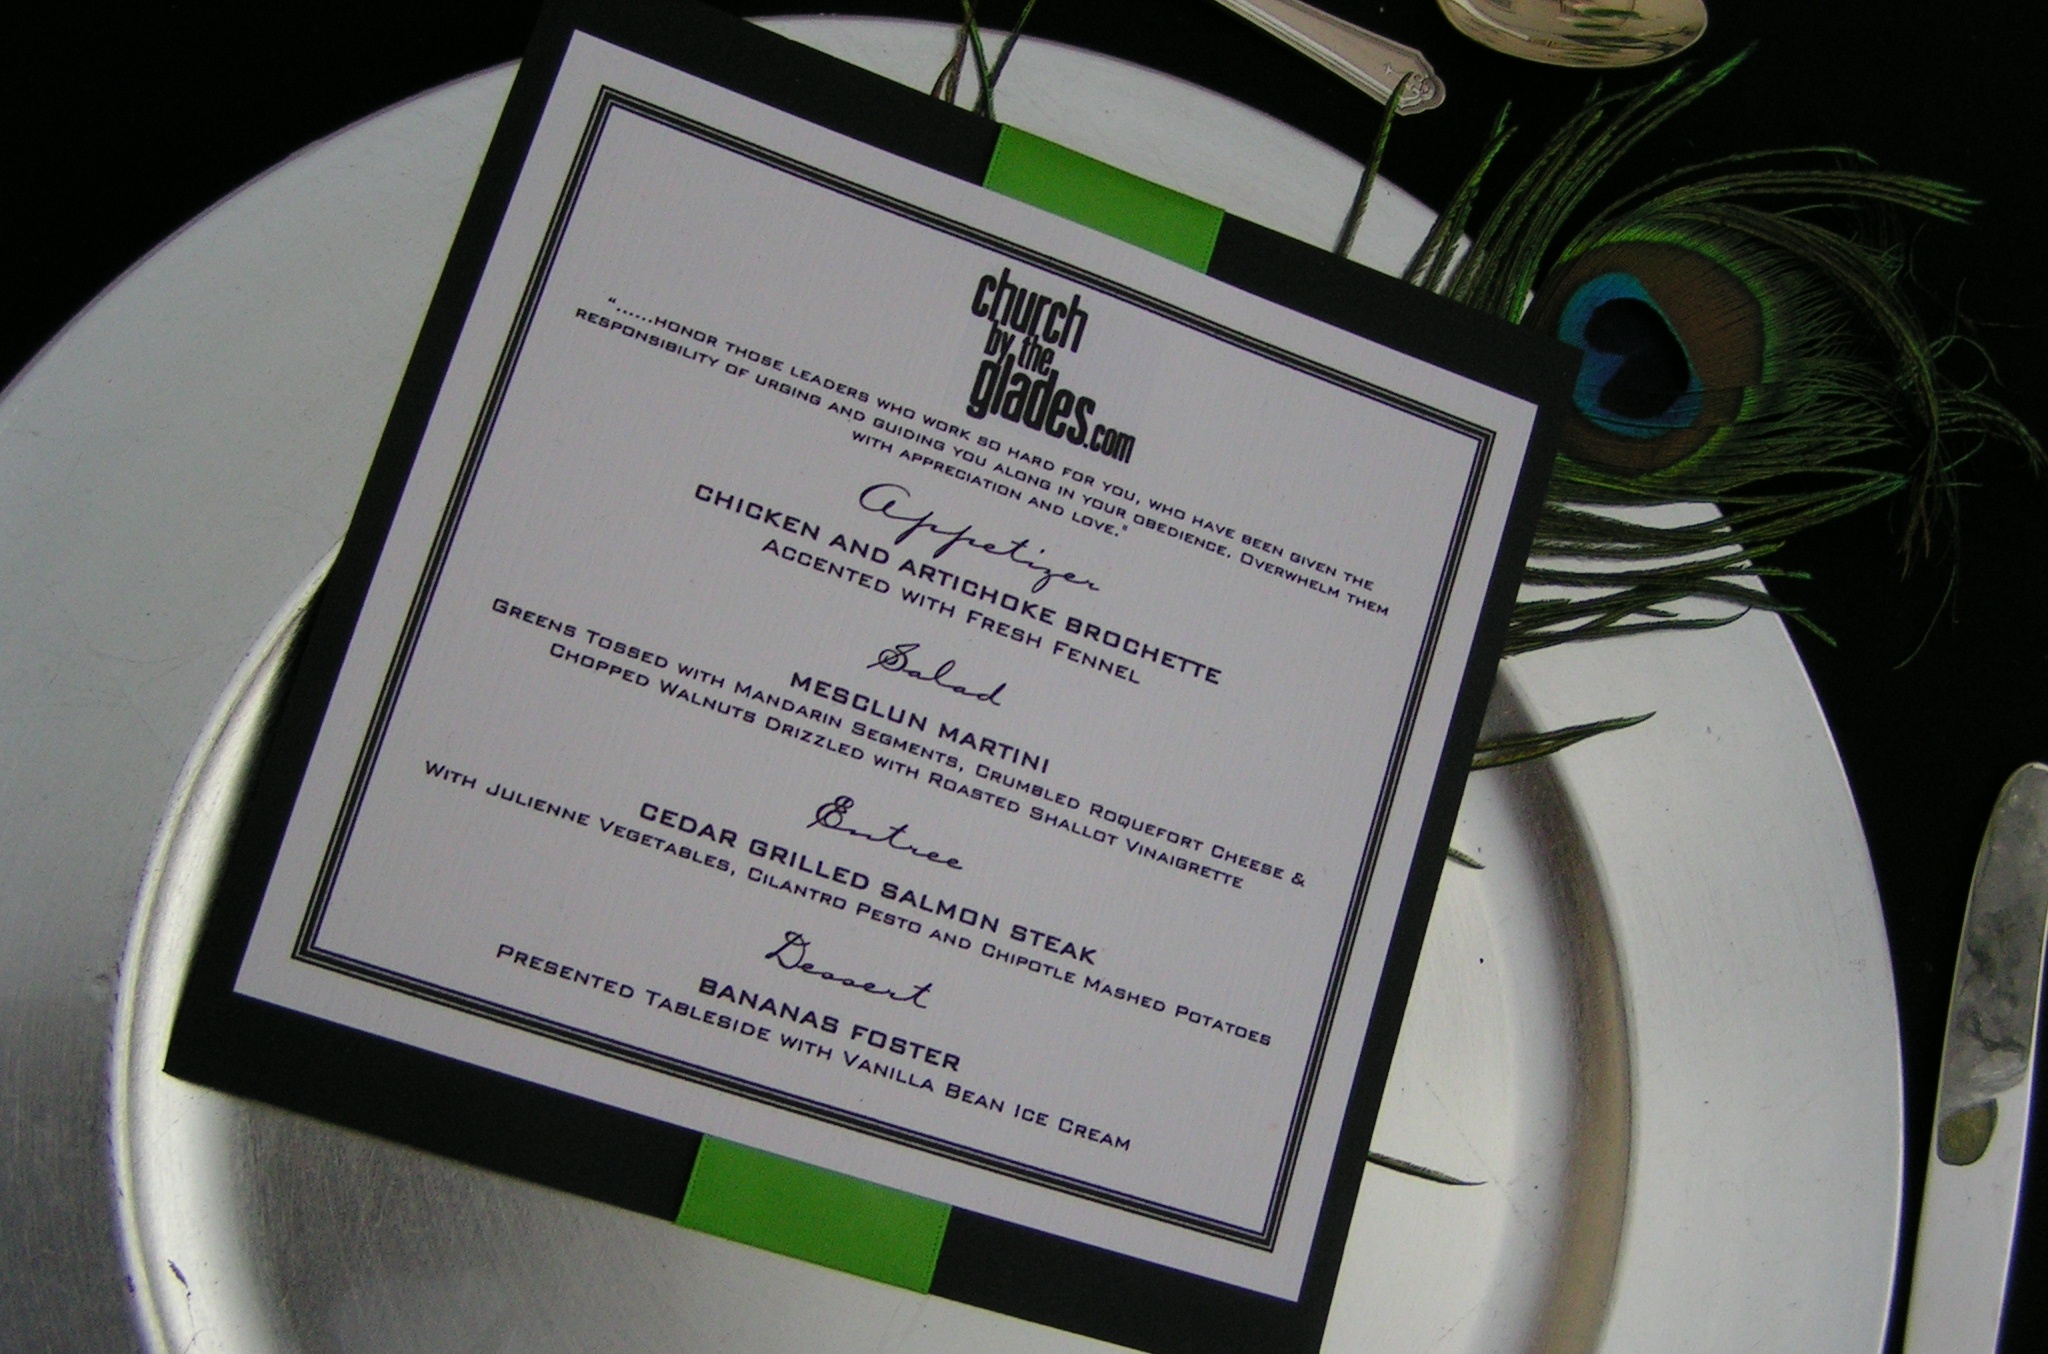 Beauty, Flowers & Decor, Decor, white, green, black, silver, Feathers, Menu, Detail, Events, Card, Productions, Setting, Feather, Markei, Menucard